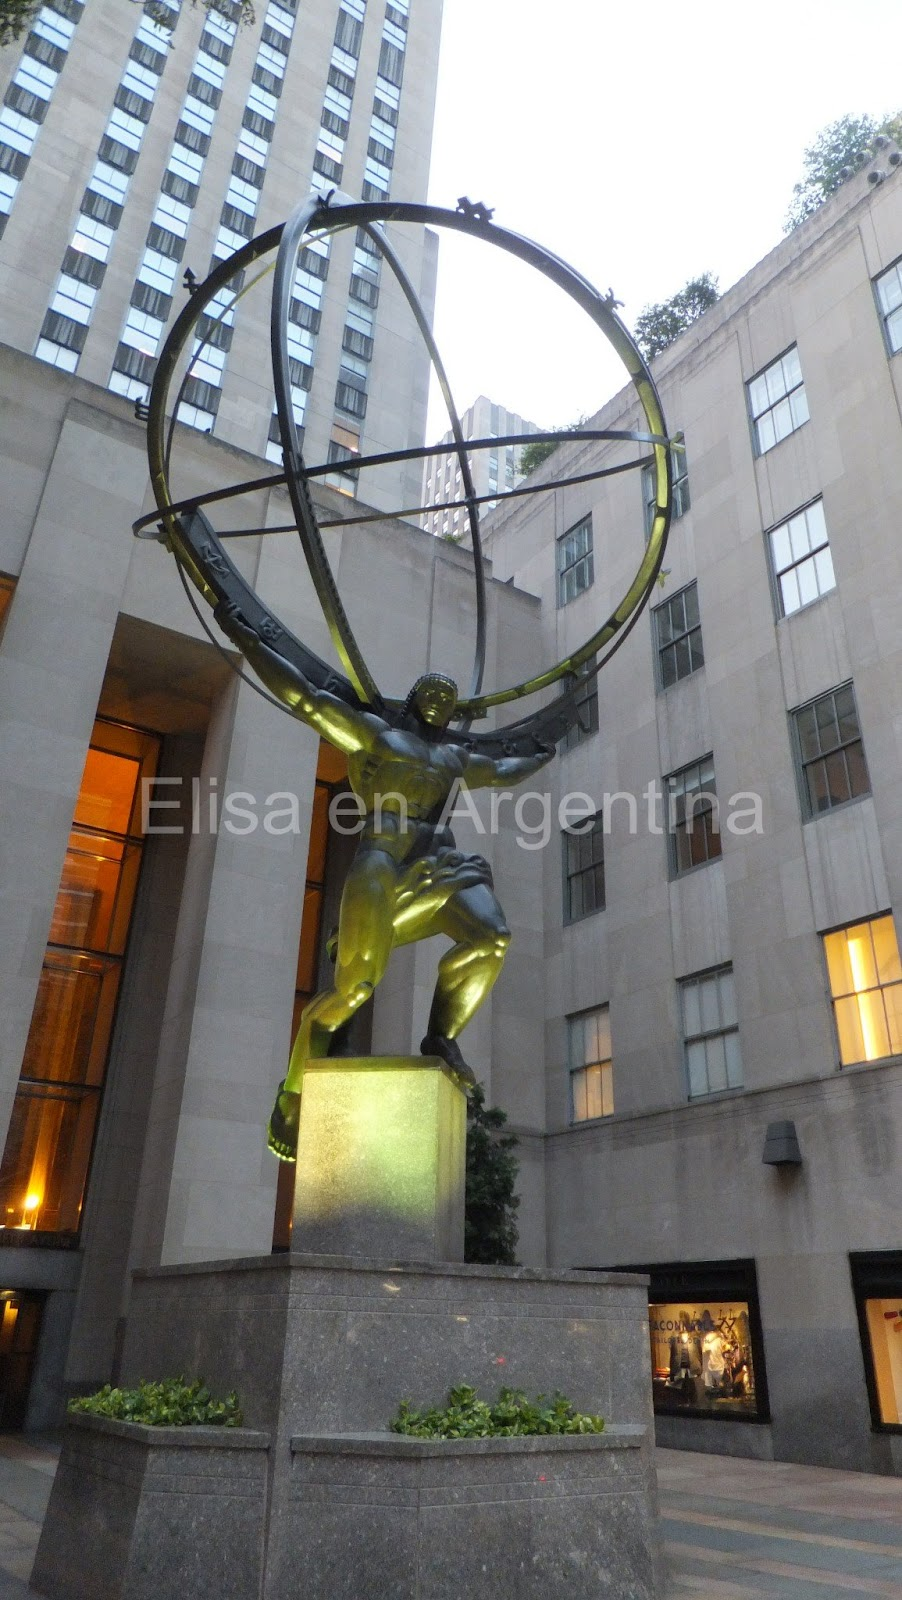 Rockefeller Center, New York, Elisa N, Blog de Viajes, Lifestyle, Travel